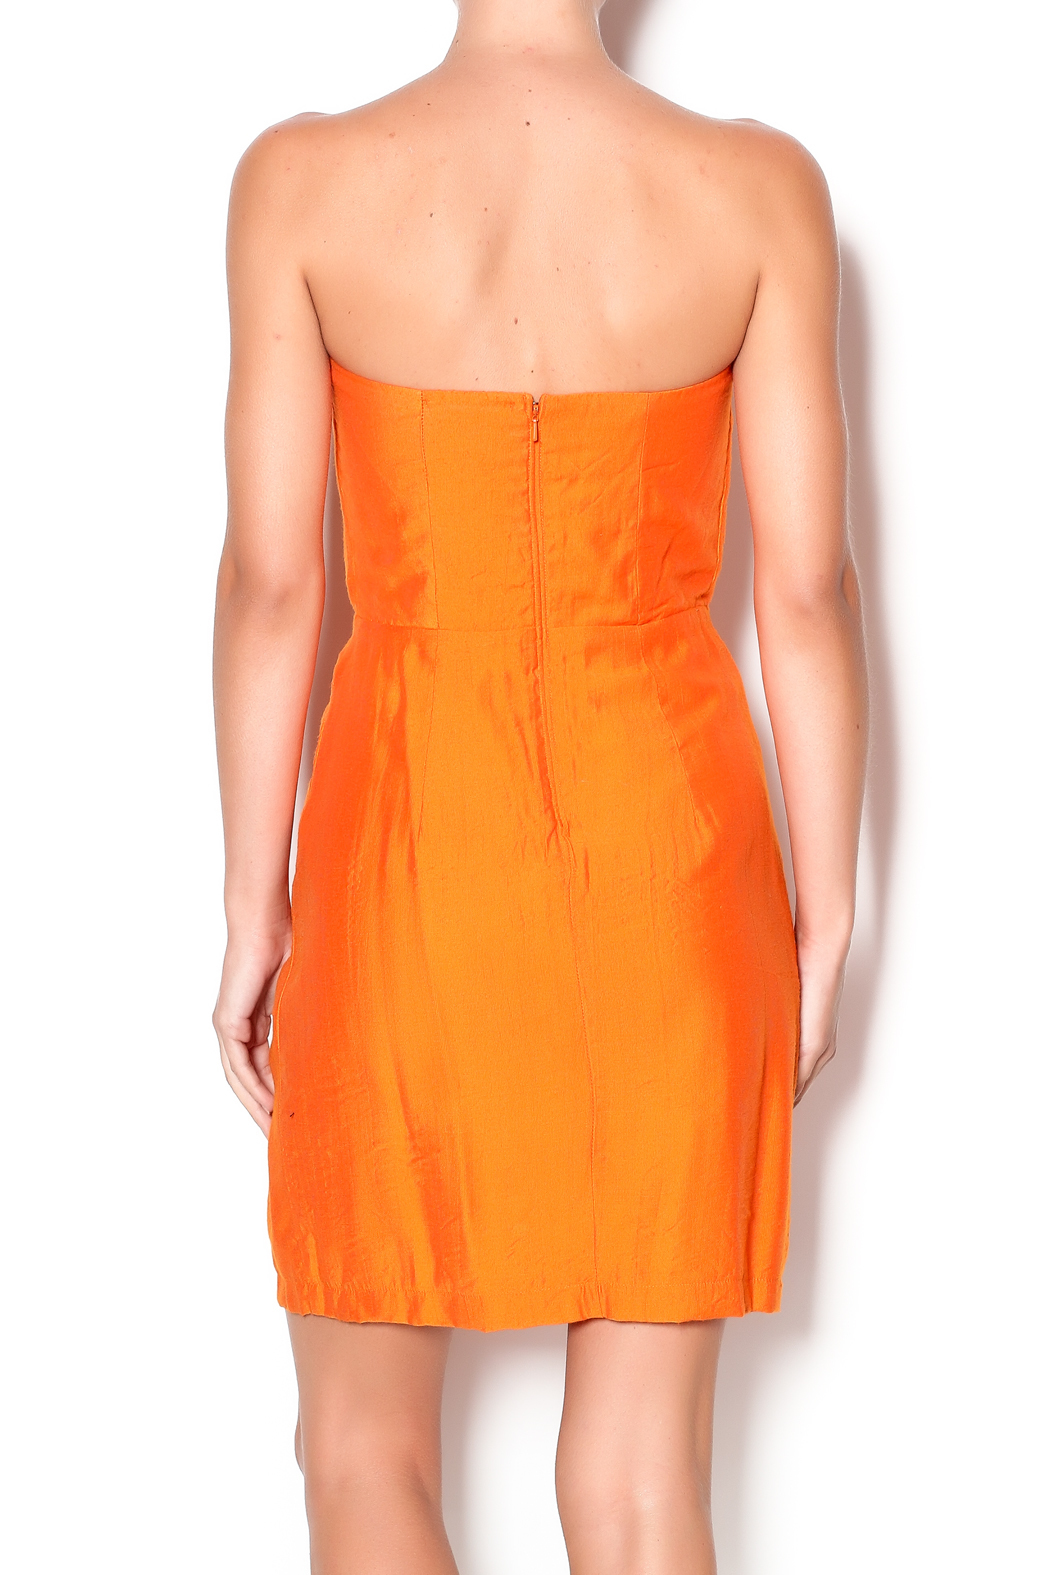 Judith March Strapless Orange Dress From Louisiana By Rrus